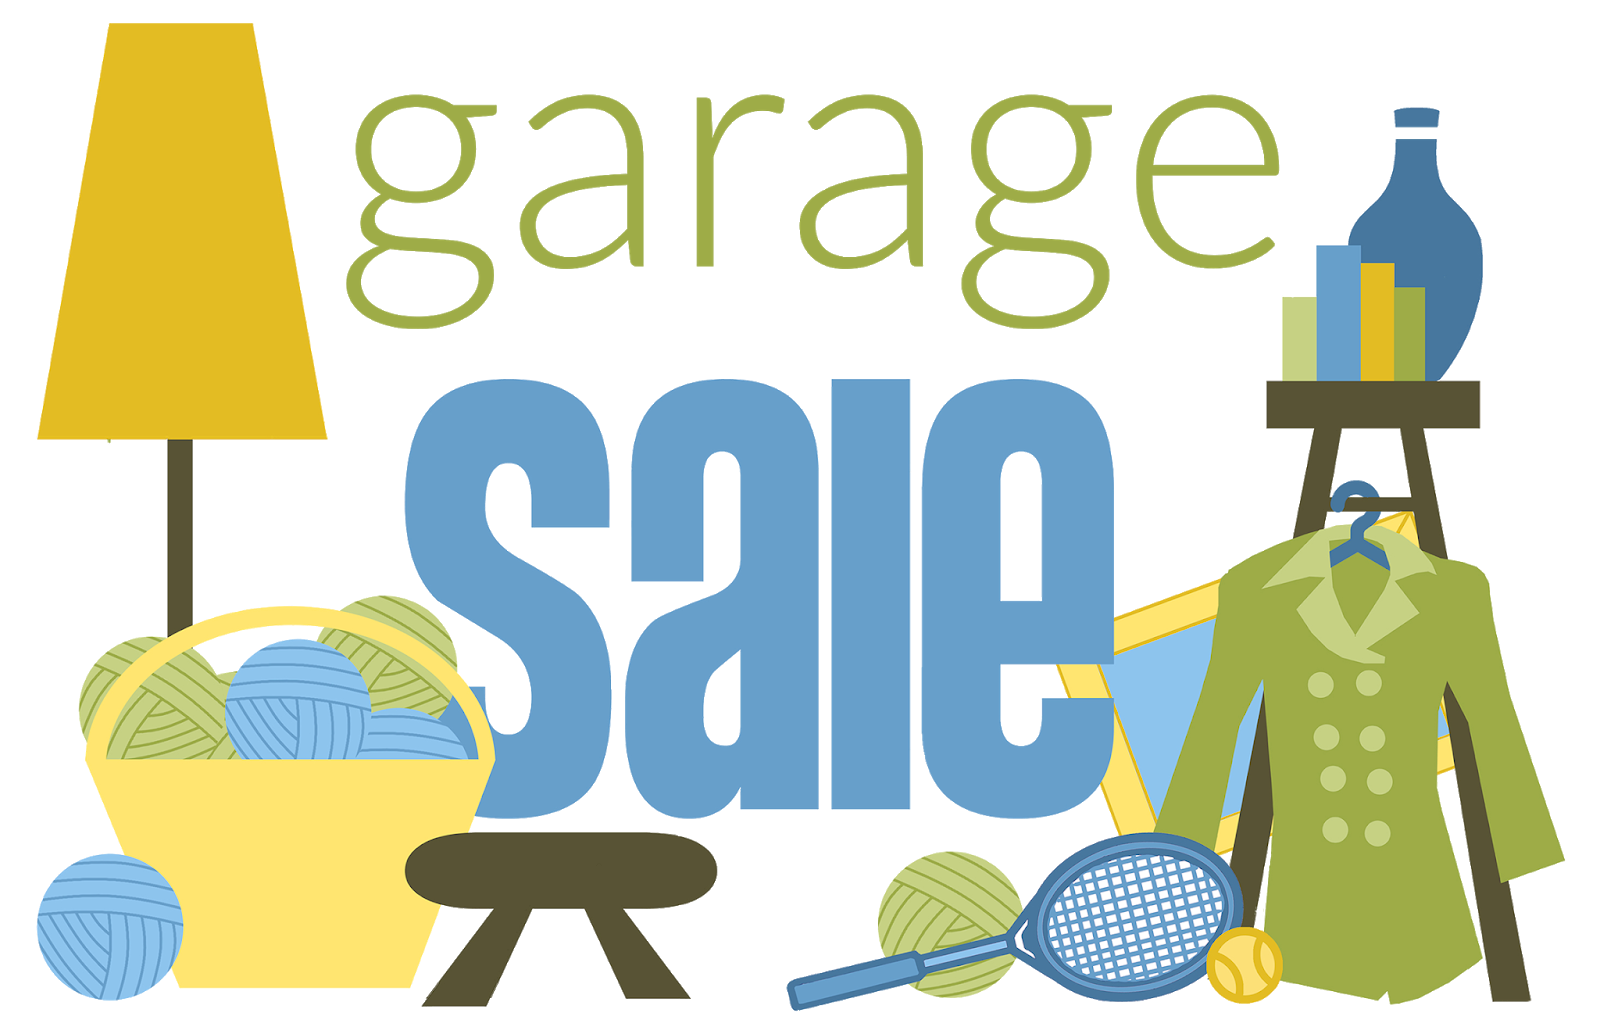 hight resolution of download large image garage sale yard sale signs clipart